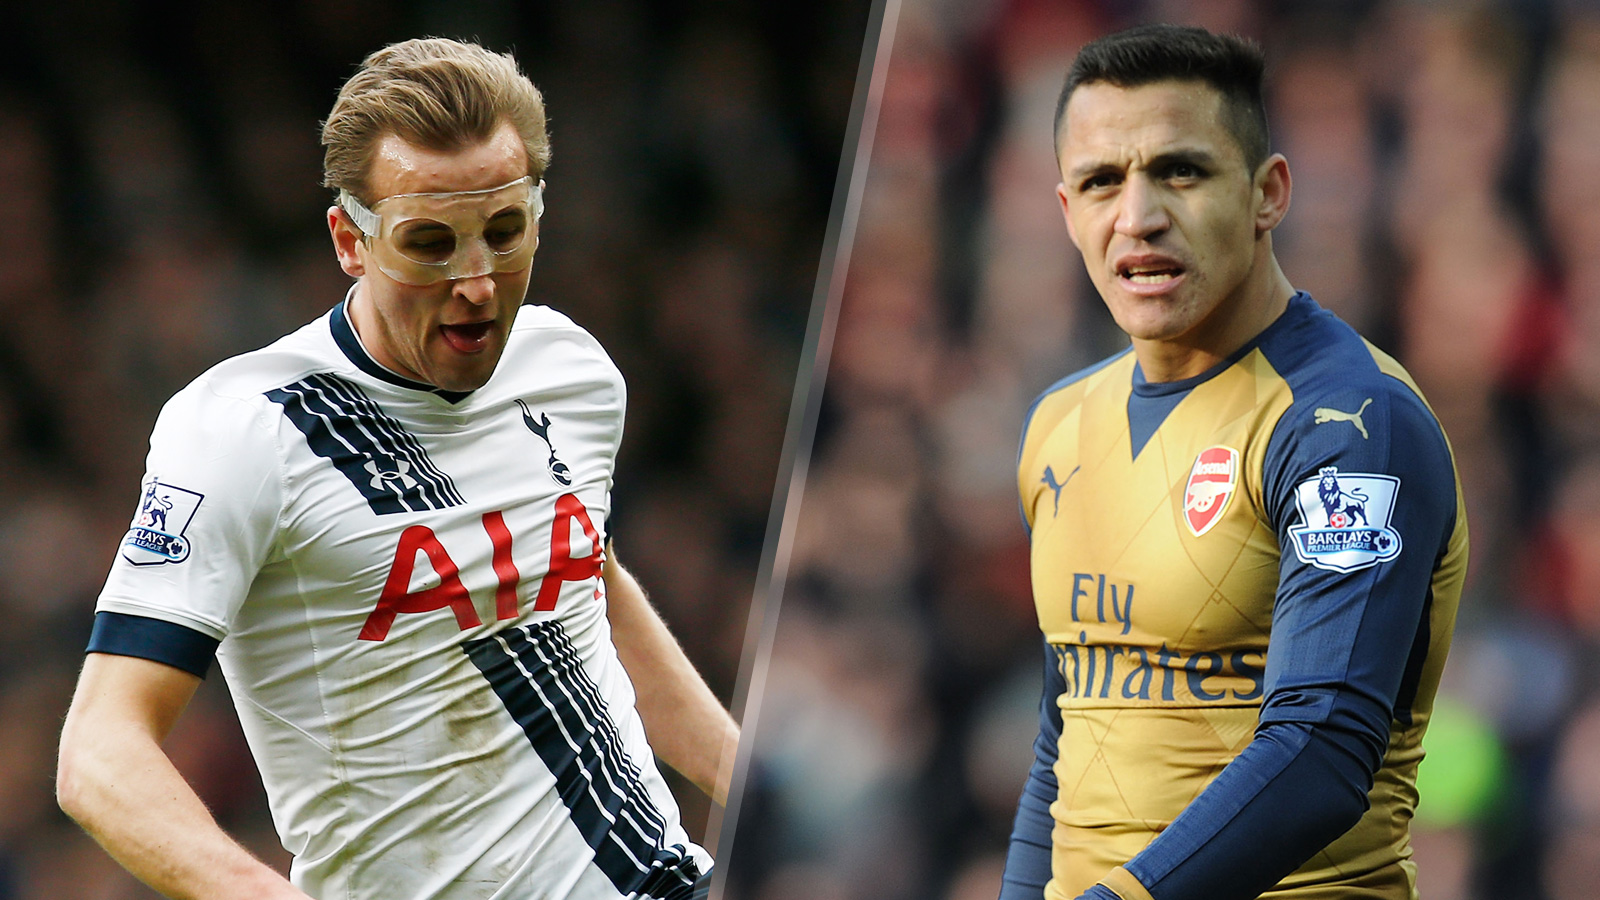 Tottenham meet Arsenal in the biggest North London derby ever